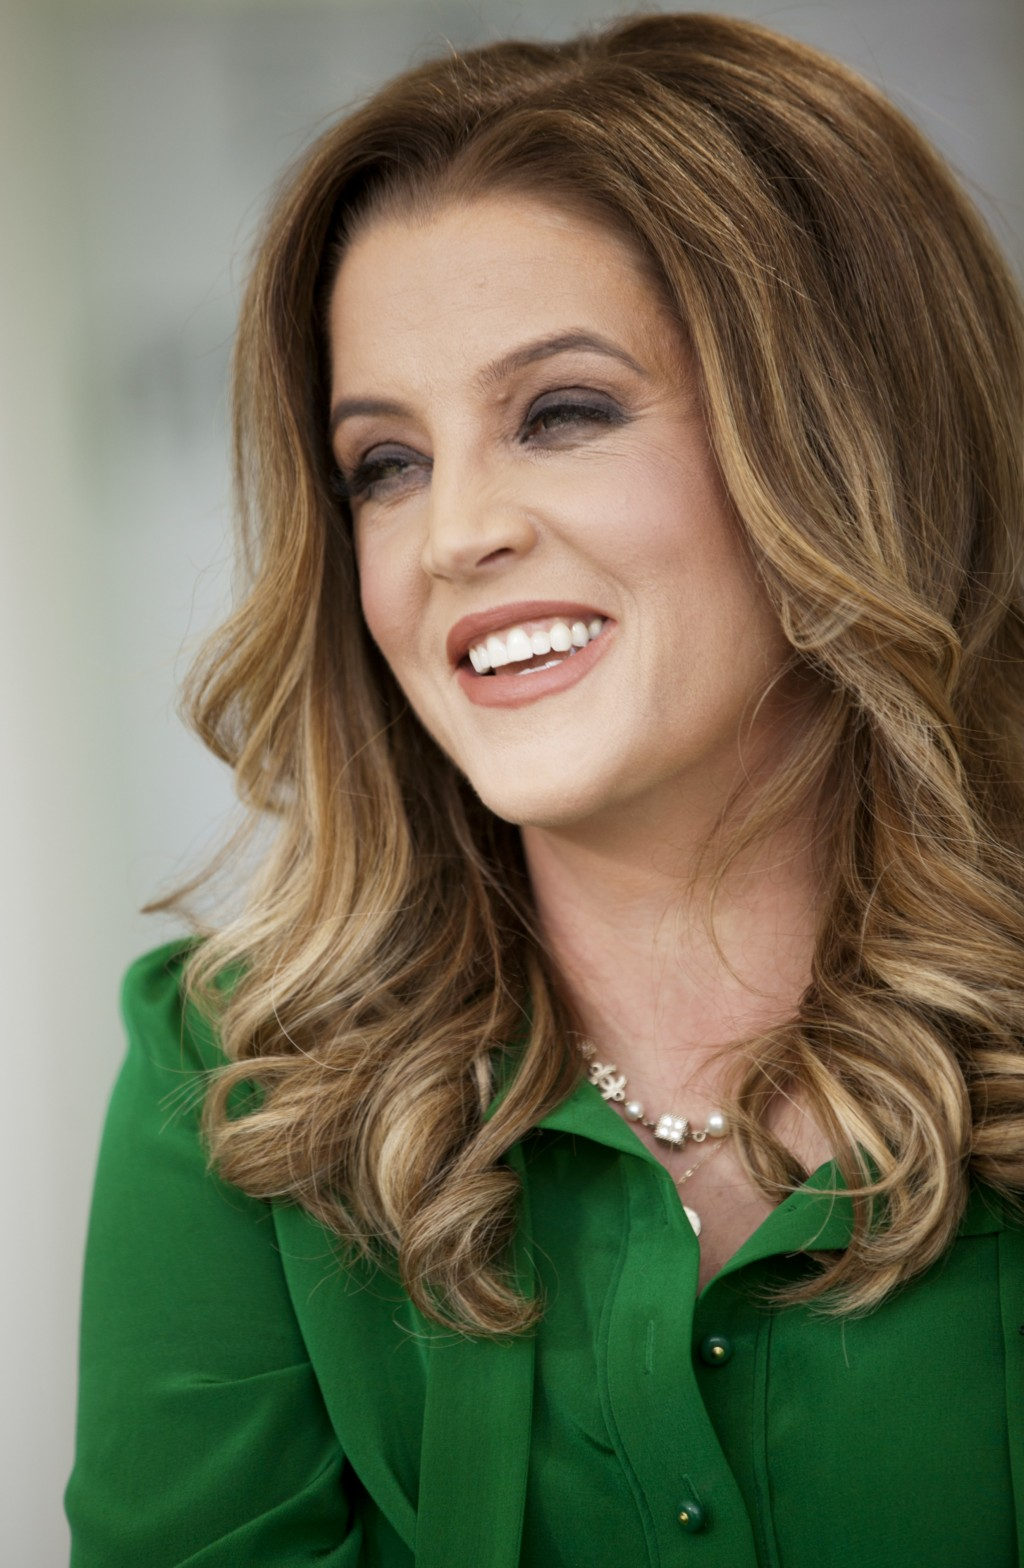 FILE - In this Thursday, May 10, 2012, file photo, singer Lisa Marie Presley poses for a photo in West Hollywood, Calif. An exhibit centered on the ca